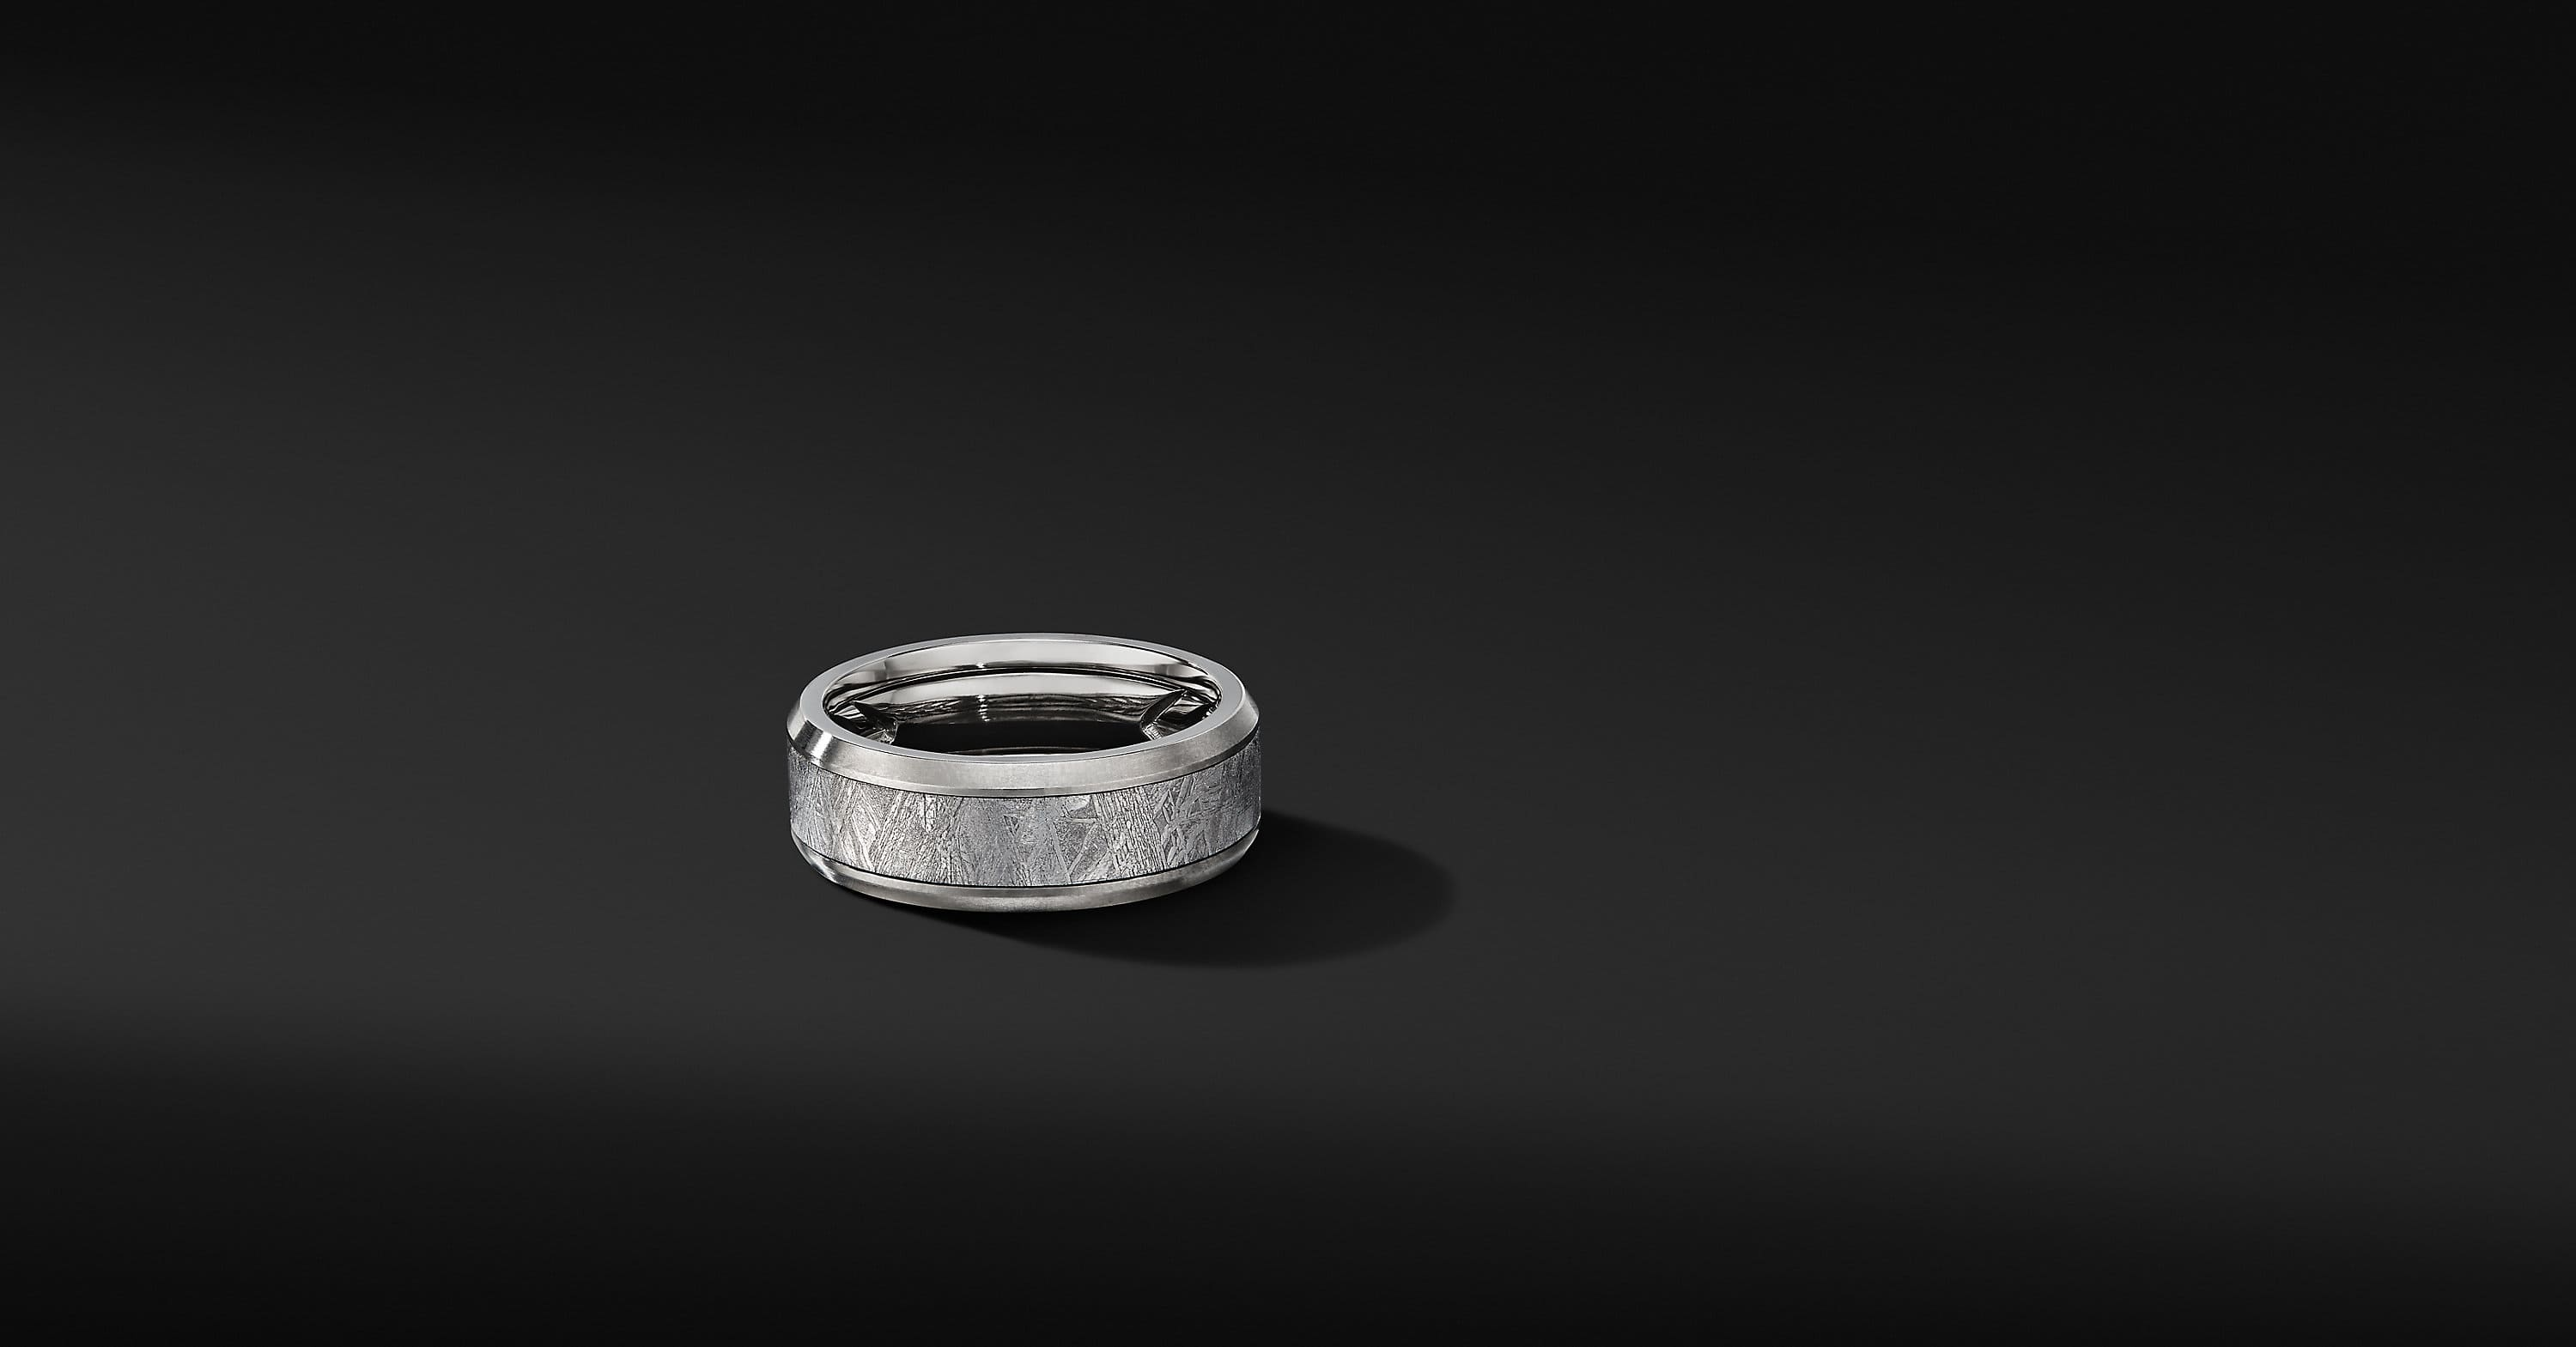 Beveled Band Ring in Grey Titanium, 8.5mm